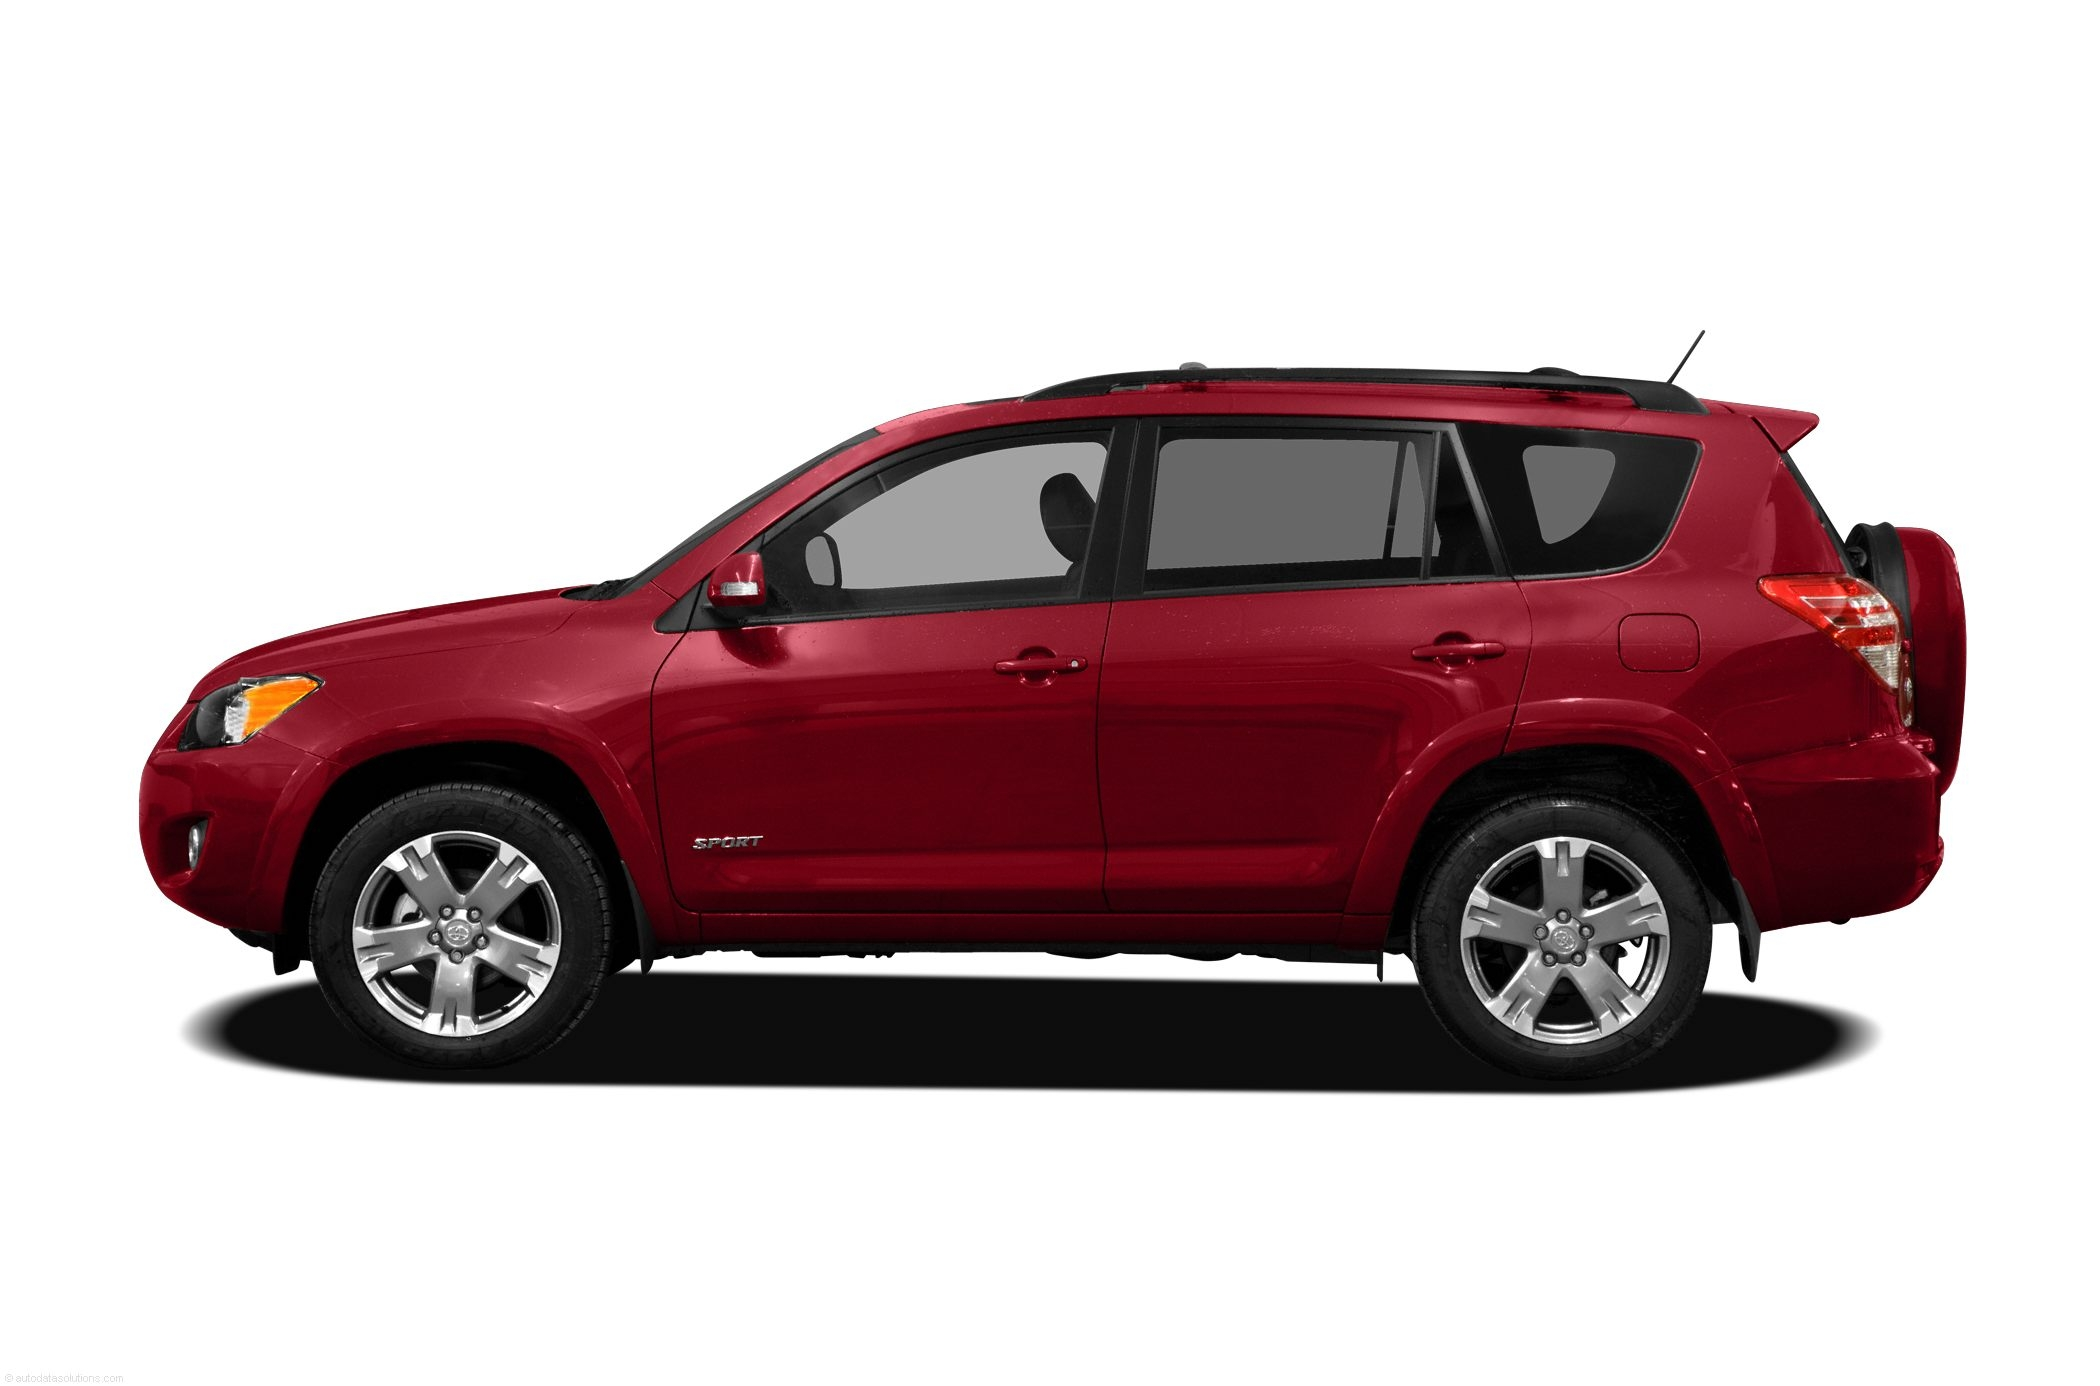 toyota rav4 invoice price toyota rav4 invoice price gallery of cars and accessories 2100 X 1386